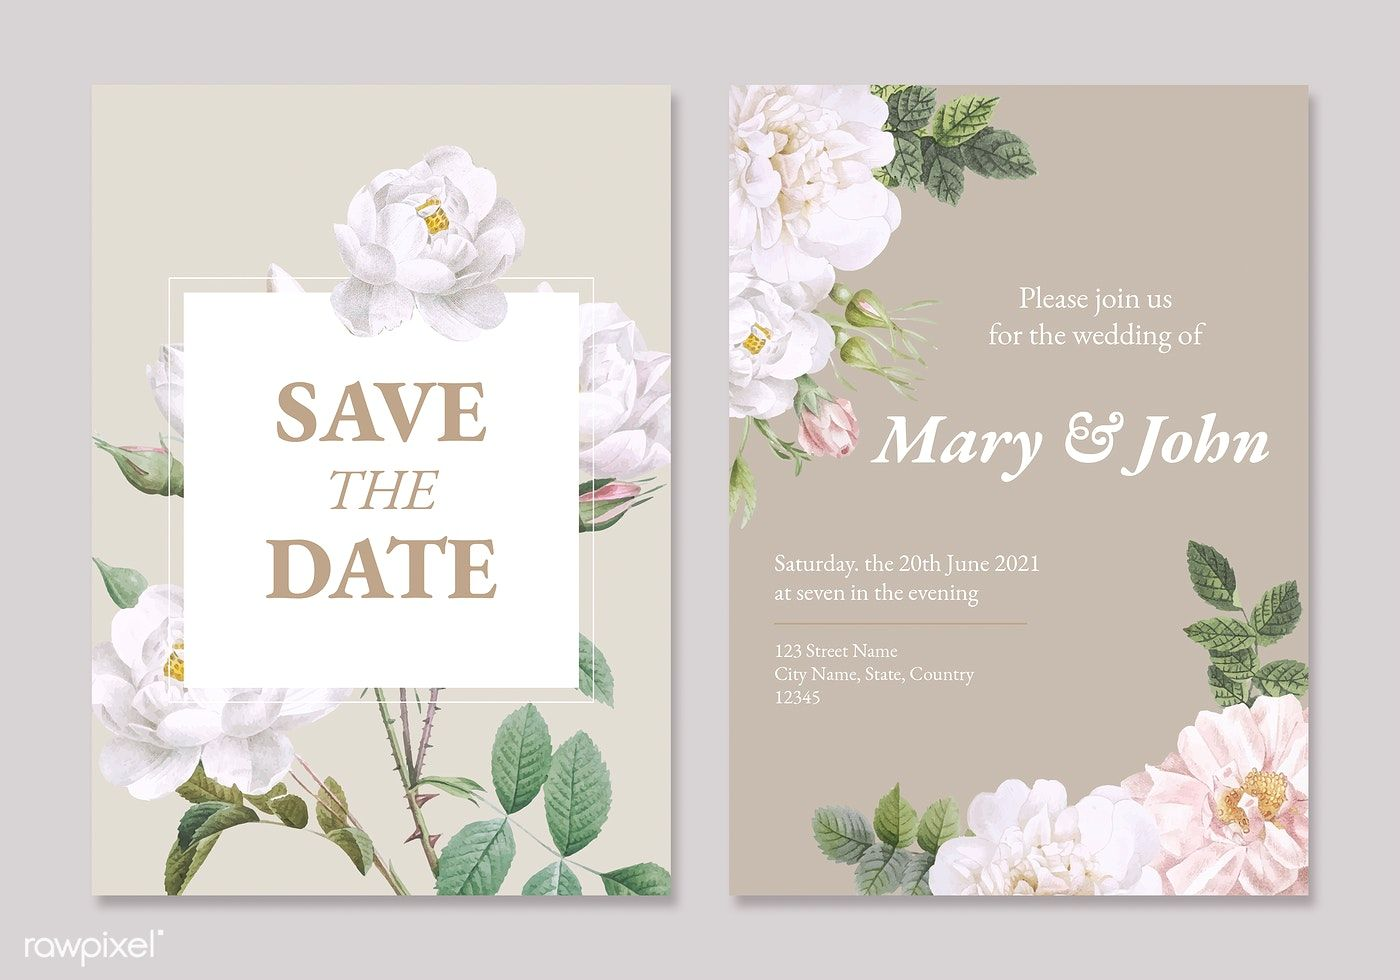 Download Premium Vector Of Floral Wedding Invitation Card Vectors Set Floral Wedding Invitations Wedding Invitation Card Template Floral Wedding Invitation Card